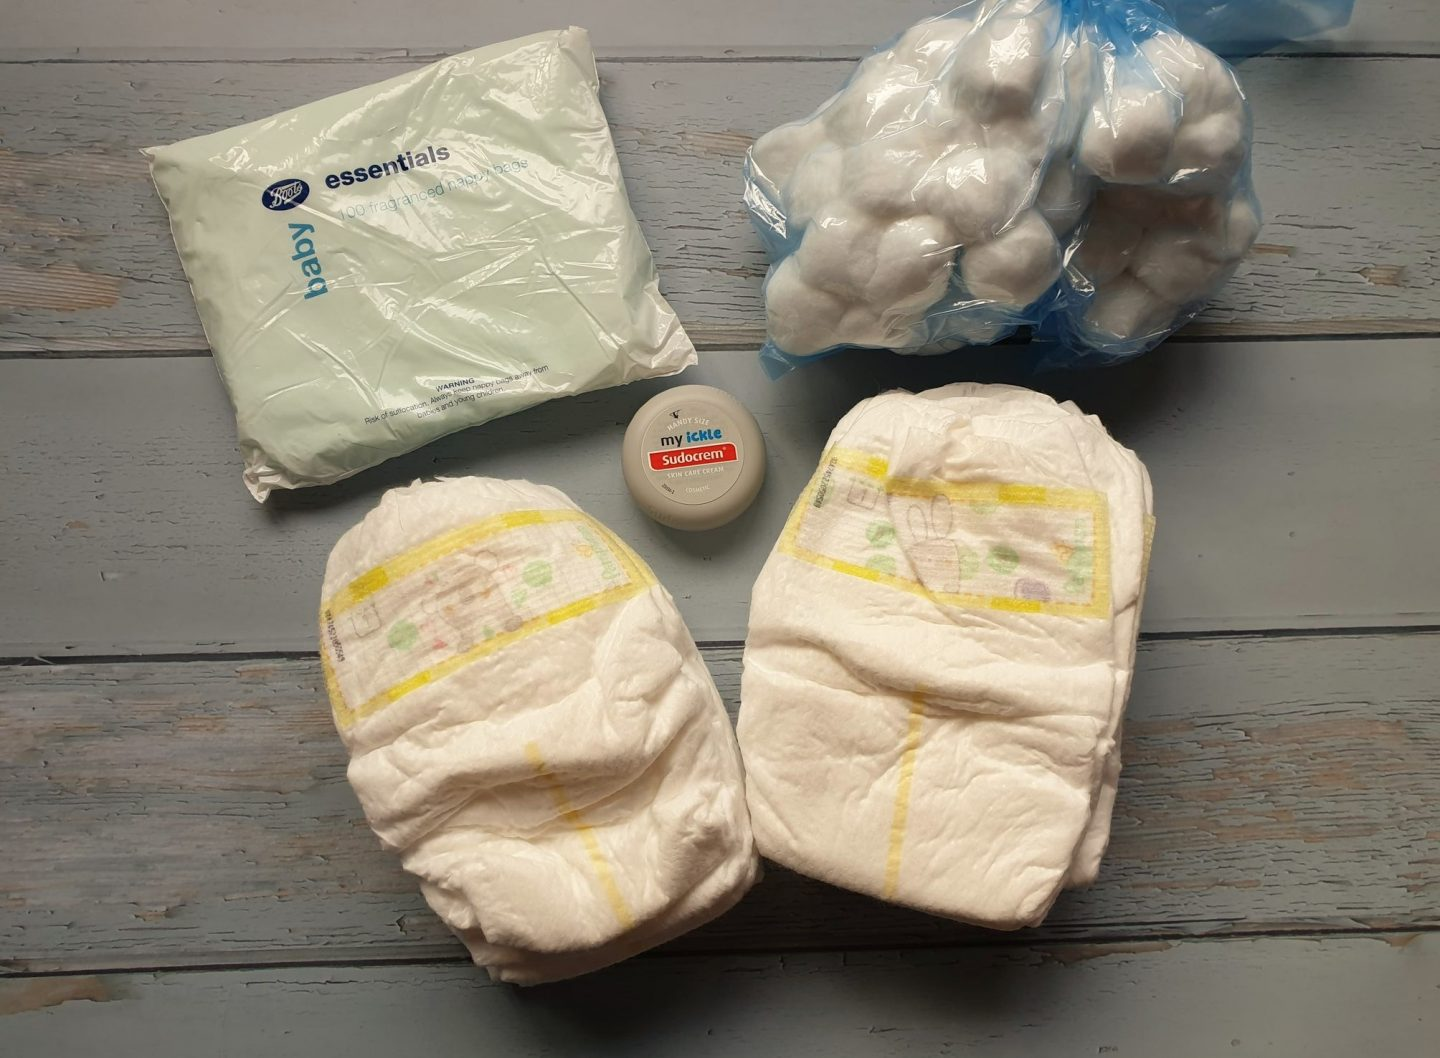 Nappies, cotton wool and Sudocrem for hospital bag